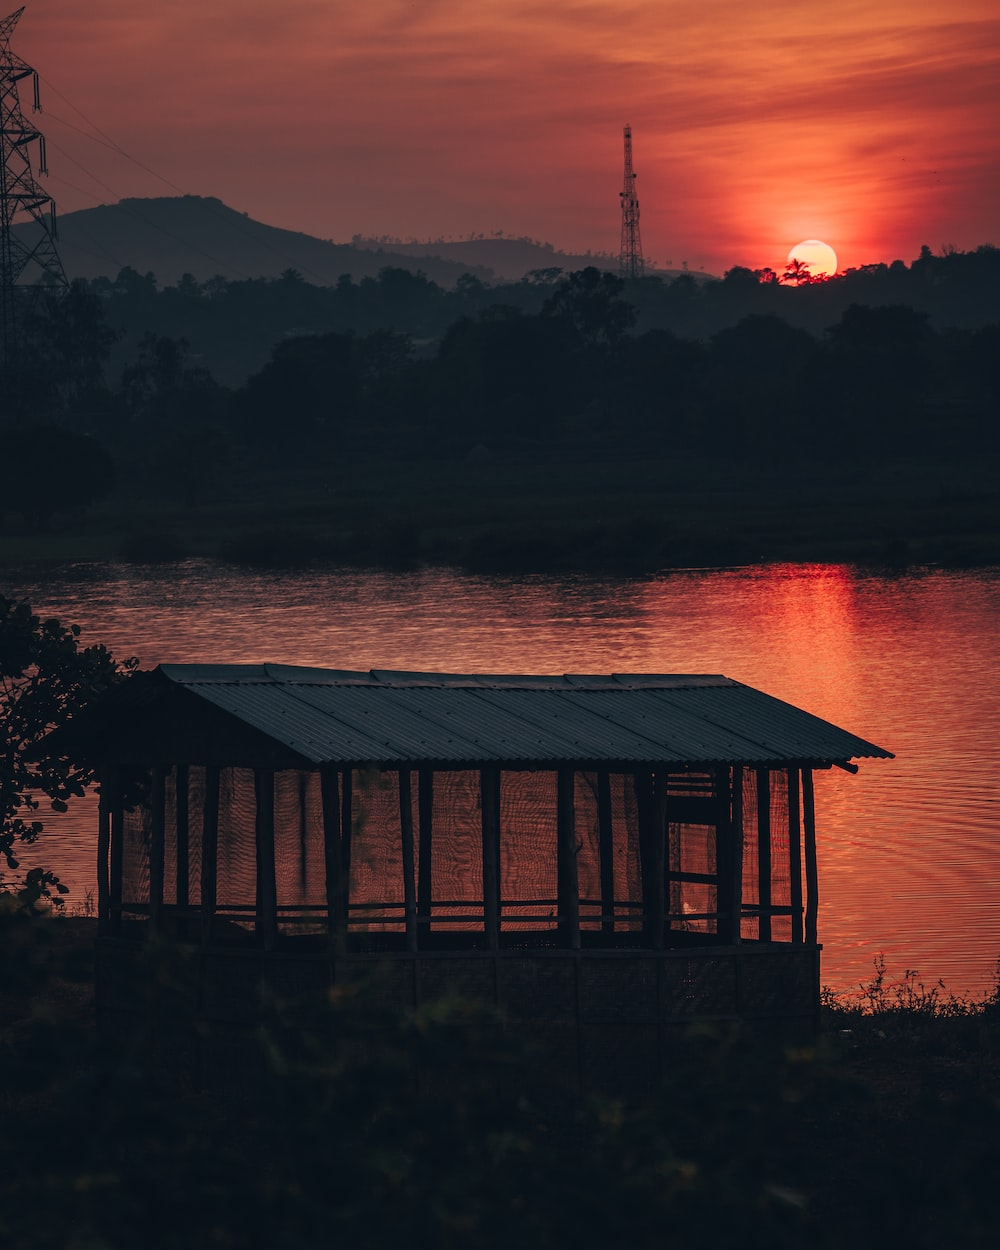 shed near water during sunset